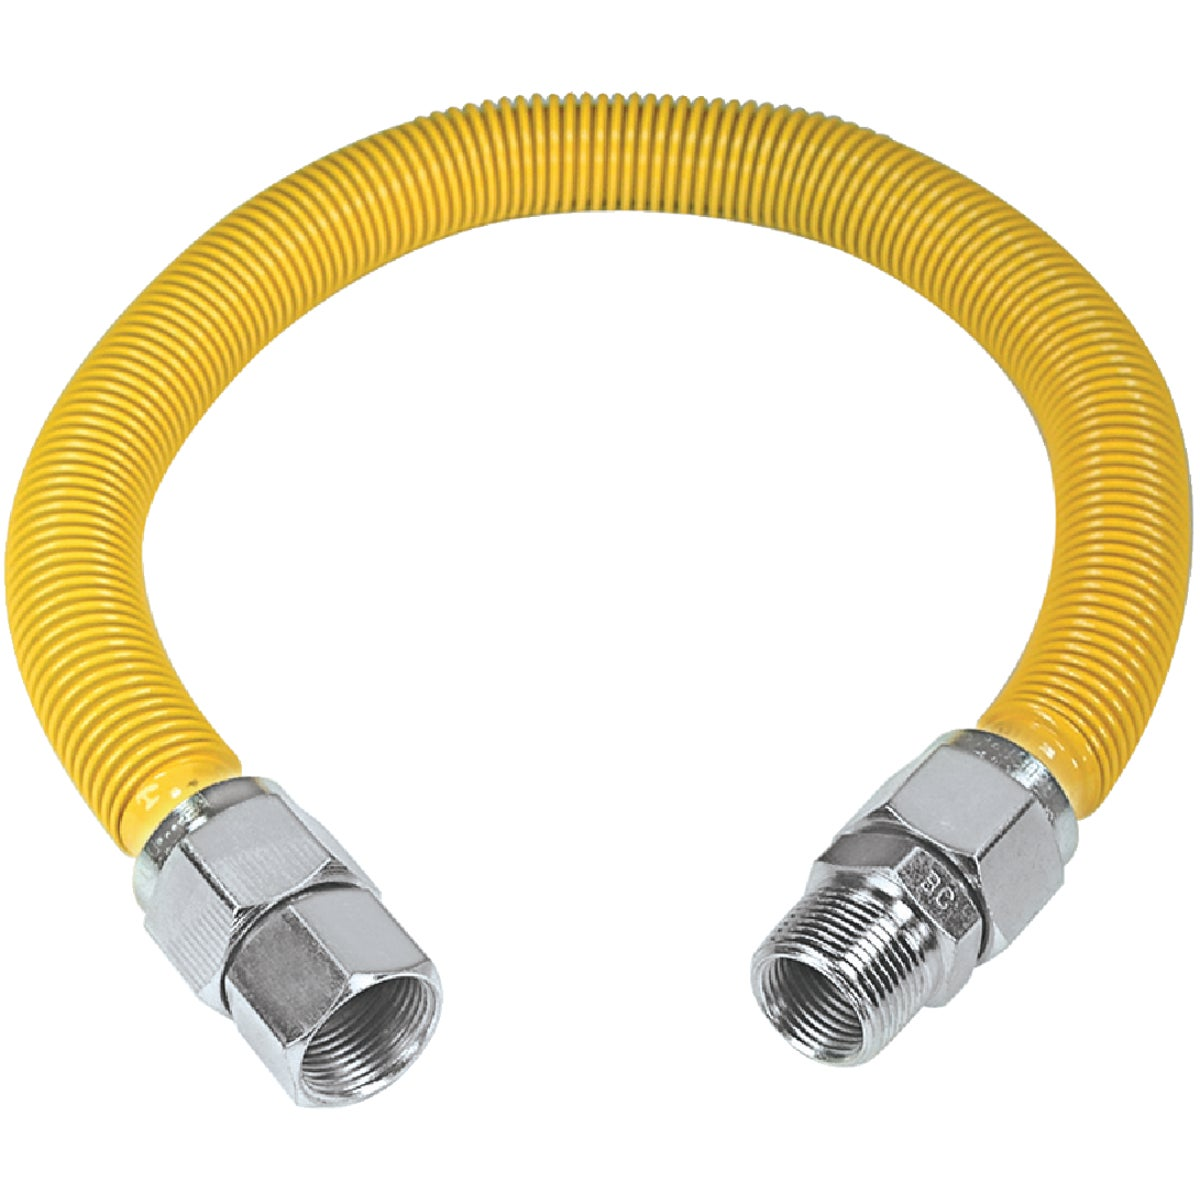 7/8X24 GAS CONNECTOR - CSSB21-24 by Brass Craft